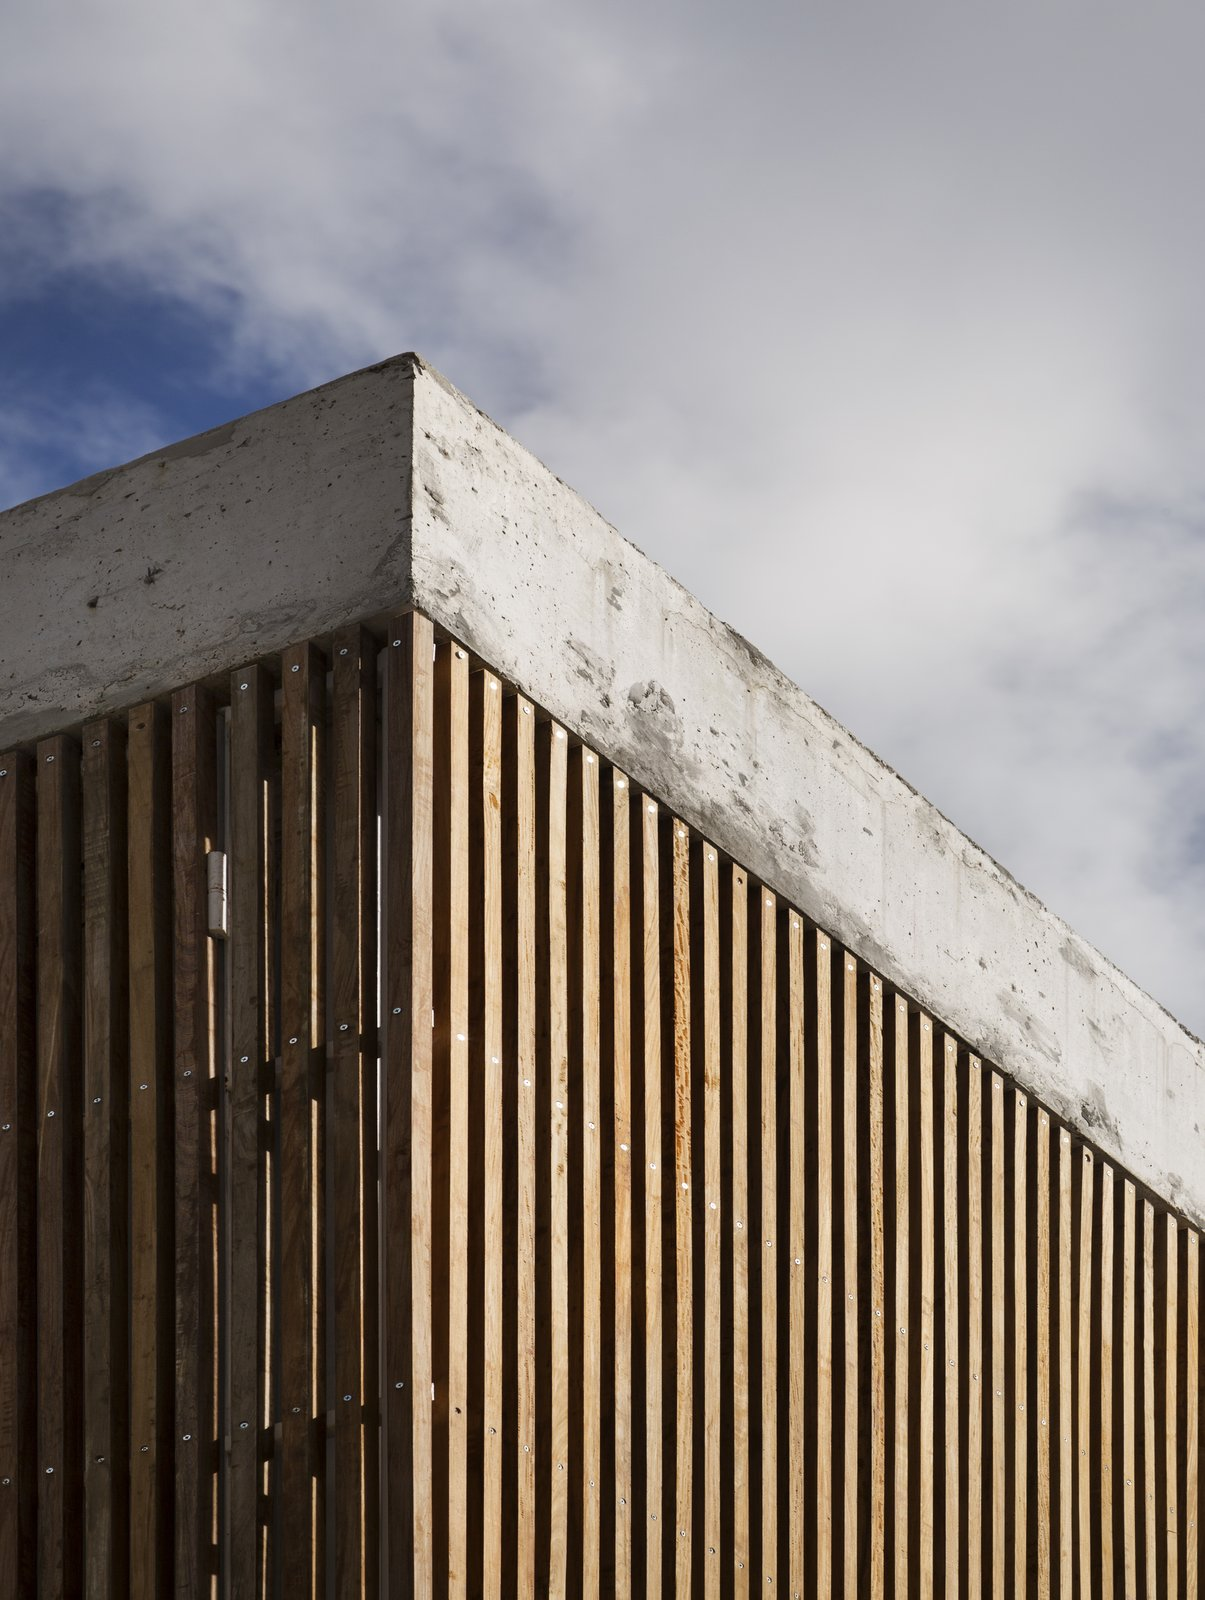 Detail Tagged: Outdoor, Wood Patio, Porch, Deck, Concrete Patio, Porch, Deck, and Wood Fence. Casa Plaza by mass arquitectos